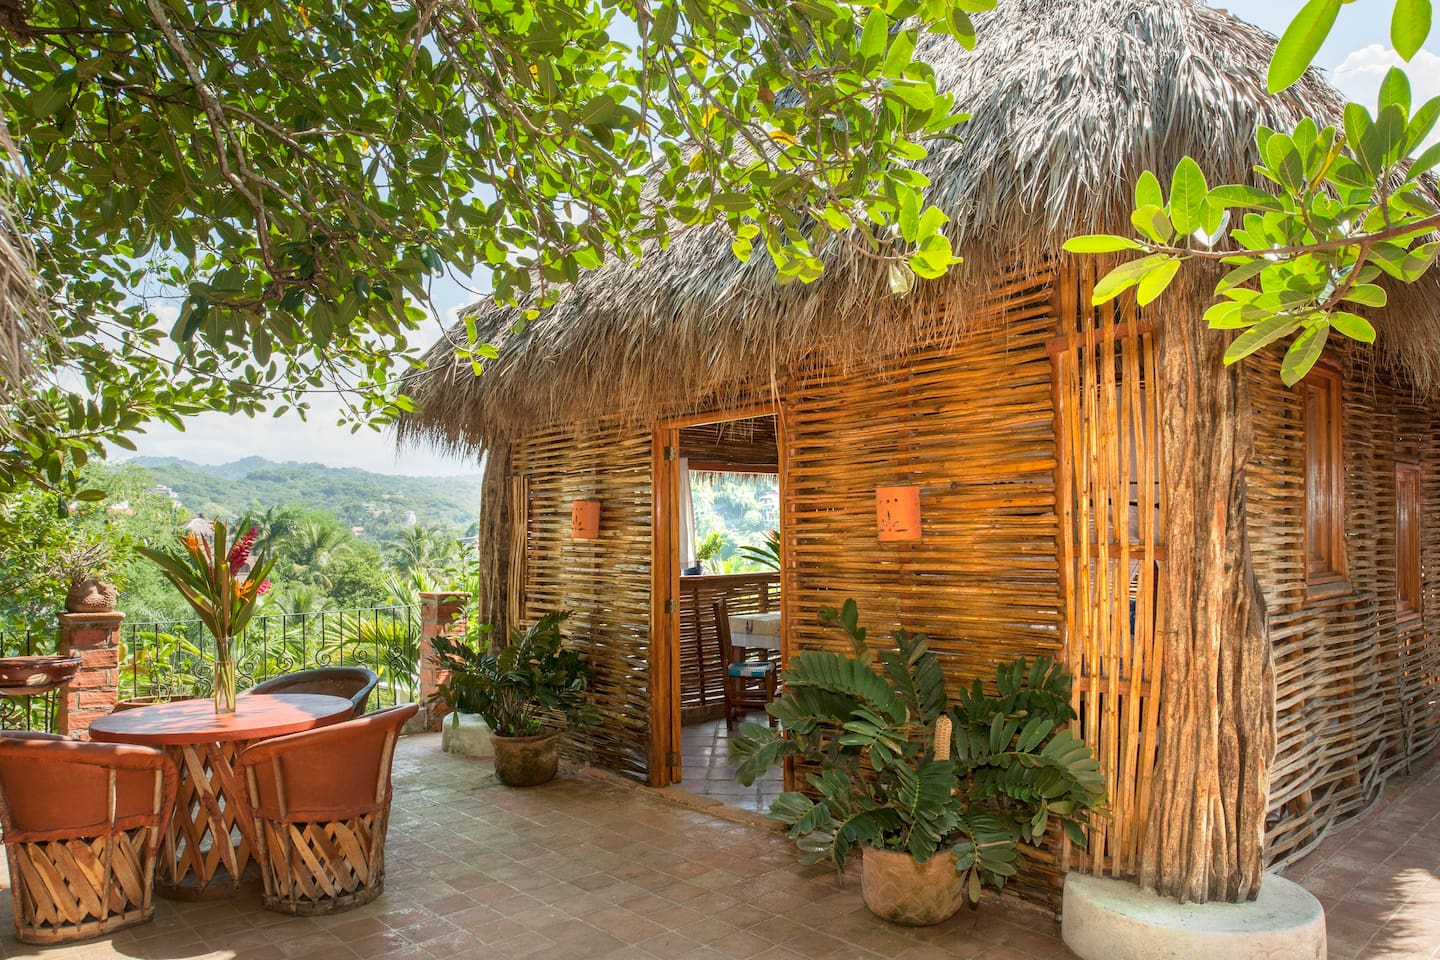 Entrance to the palapa, with beautiful views of the surrounding valley and jungle.